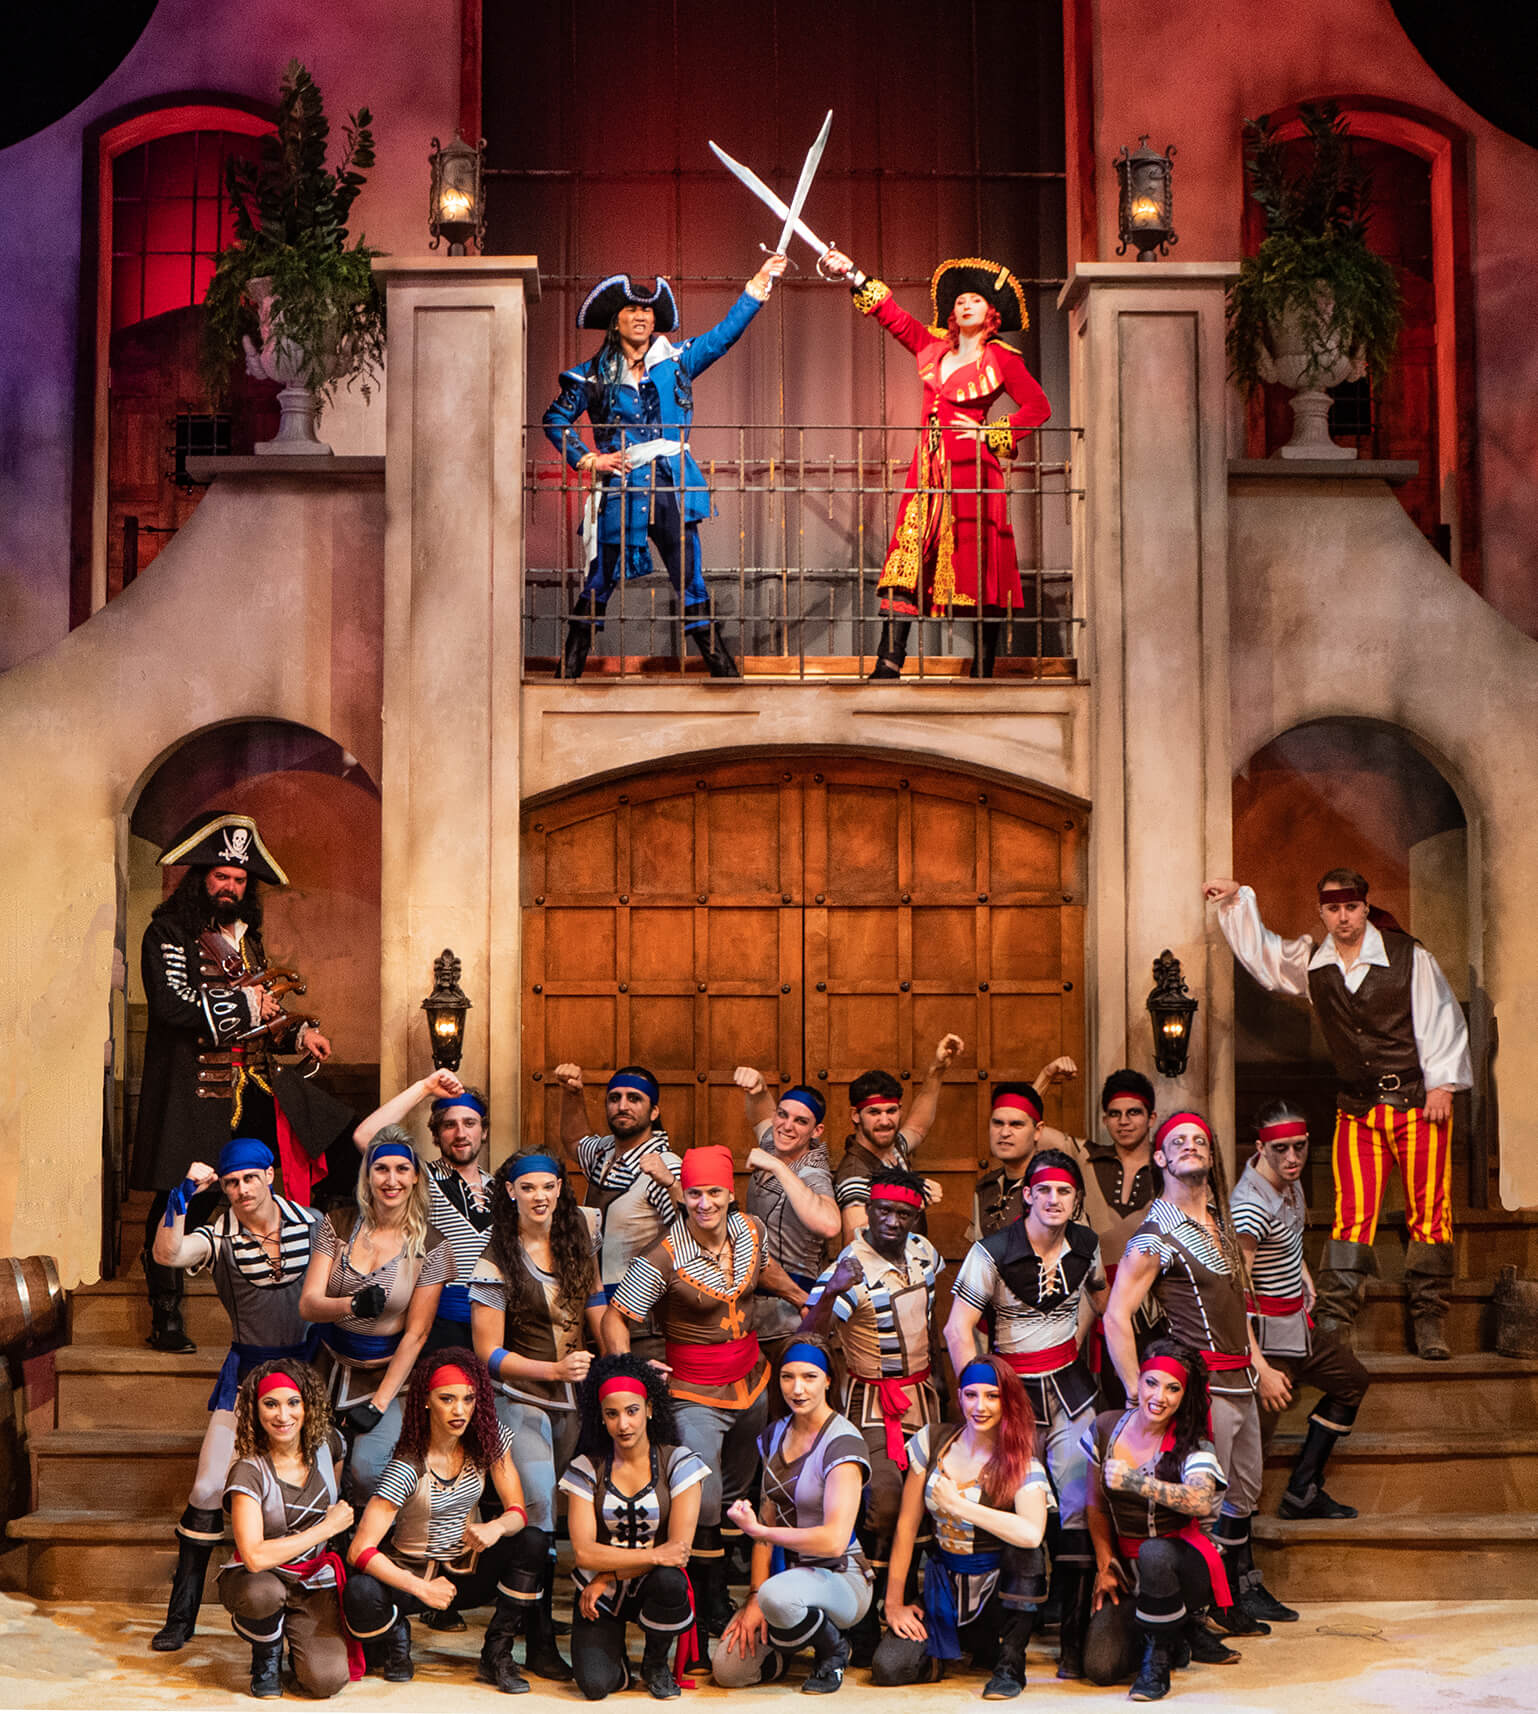 Pirates Voyage In Pigeon Forge, TN - Incredible Performances